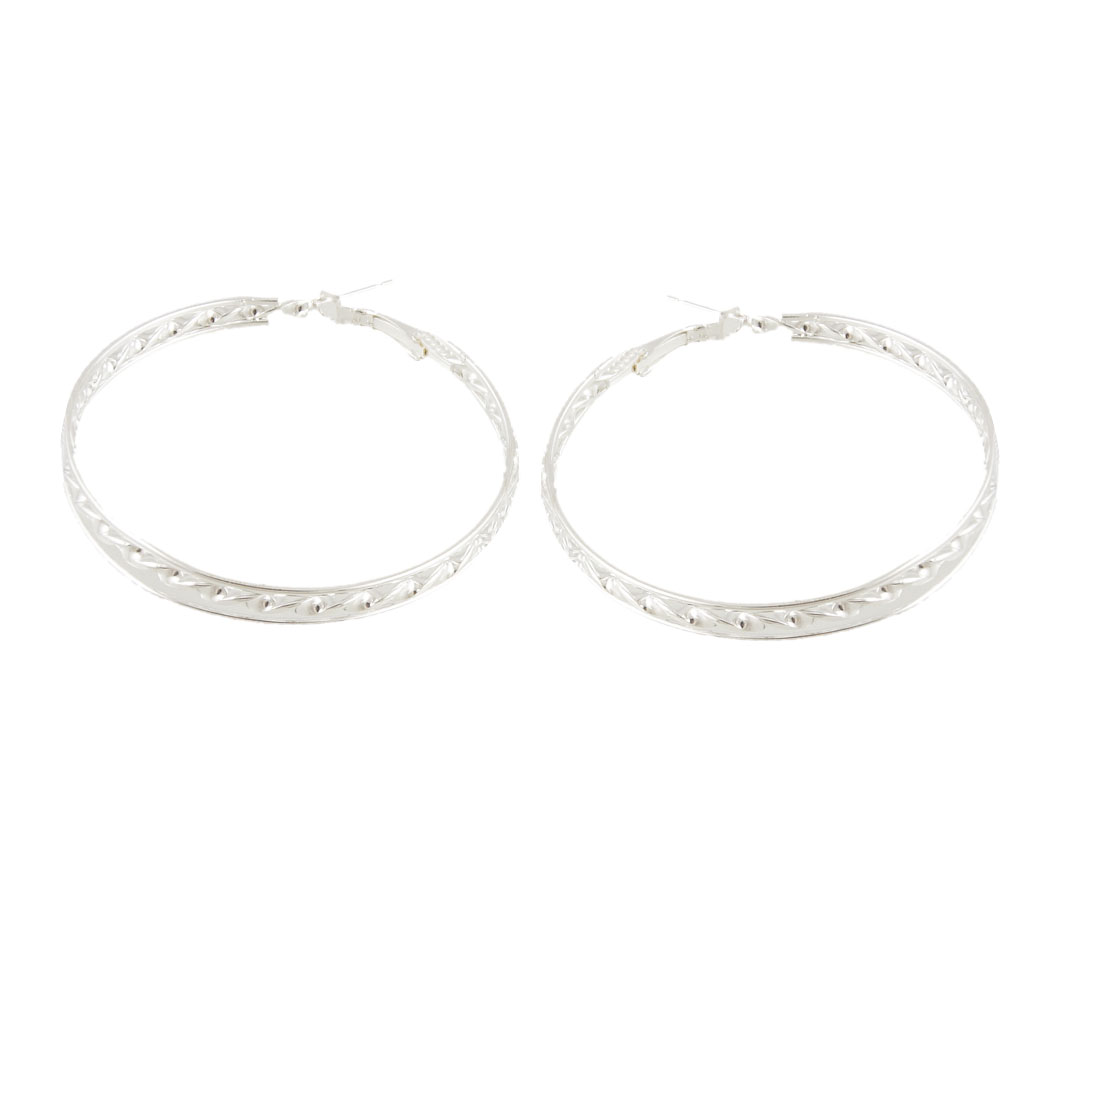 "Ladies 2.2"" Diameter Silver Tone Alloy Hoop Earrings Pair"